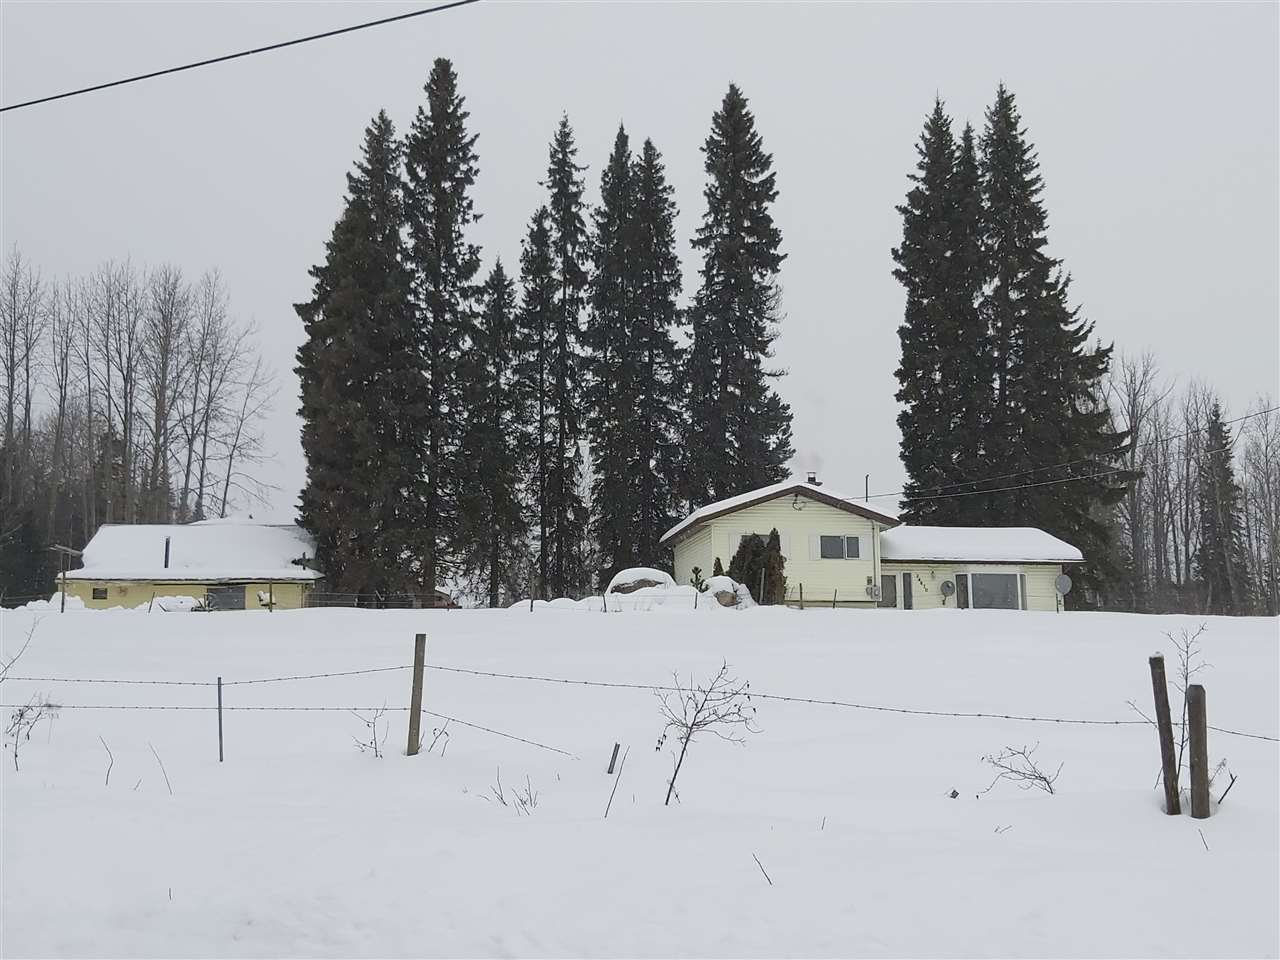 Main Photo: 24870 ISLE PIERRE - REID LAKE Road in Prince George: Nukko Lake House for sale (PG Rural North (Zone 76))  : MLS®# R2427392